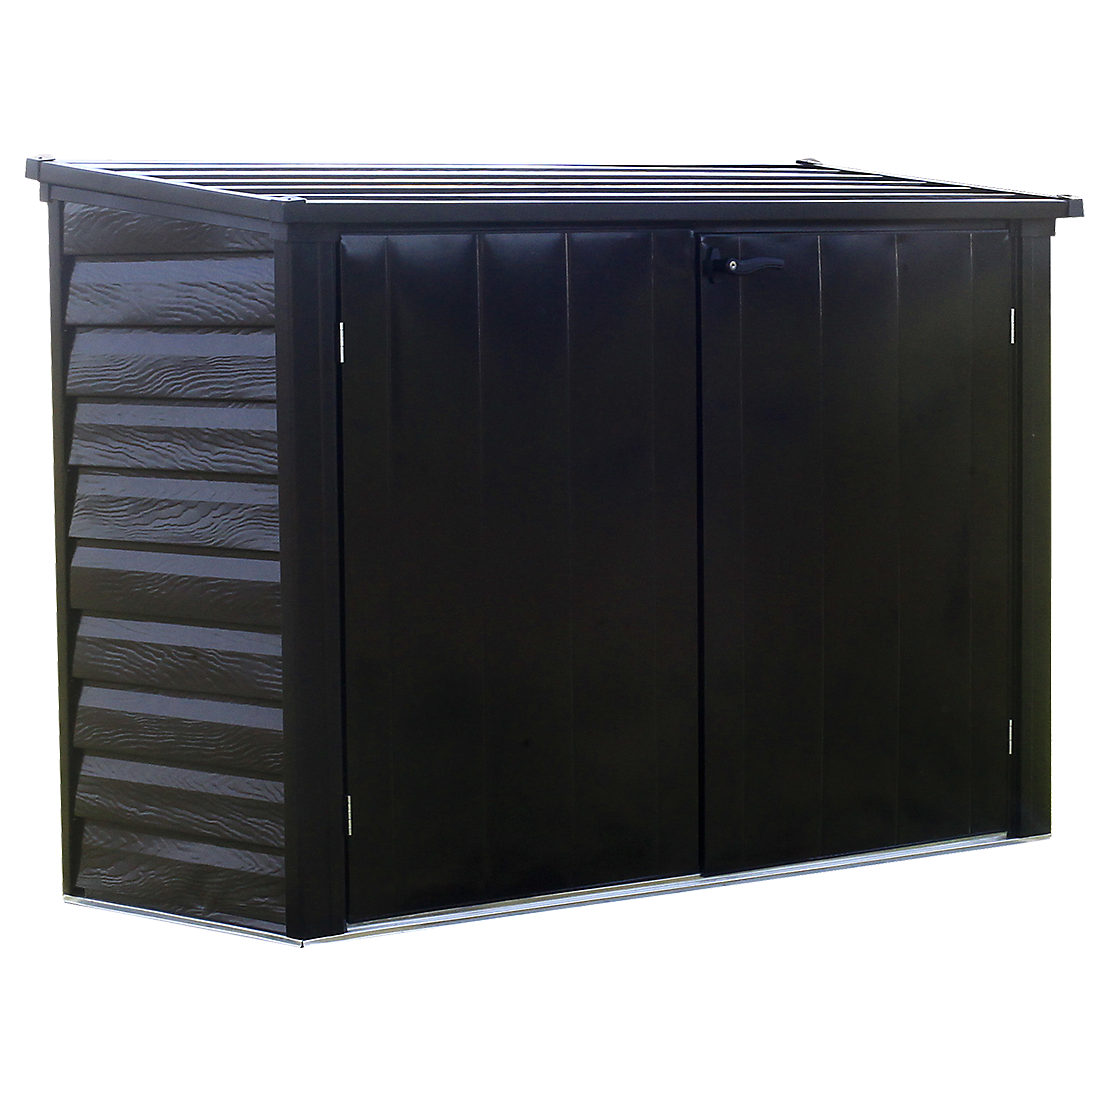 Versa-Shed Steel Storage 6 x 3 ft.  Electro Galvanized